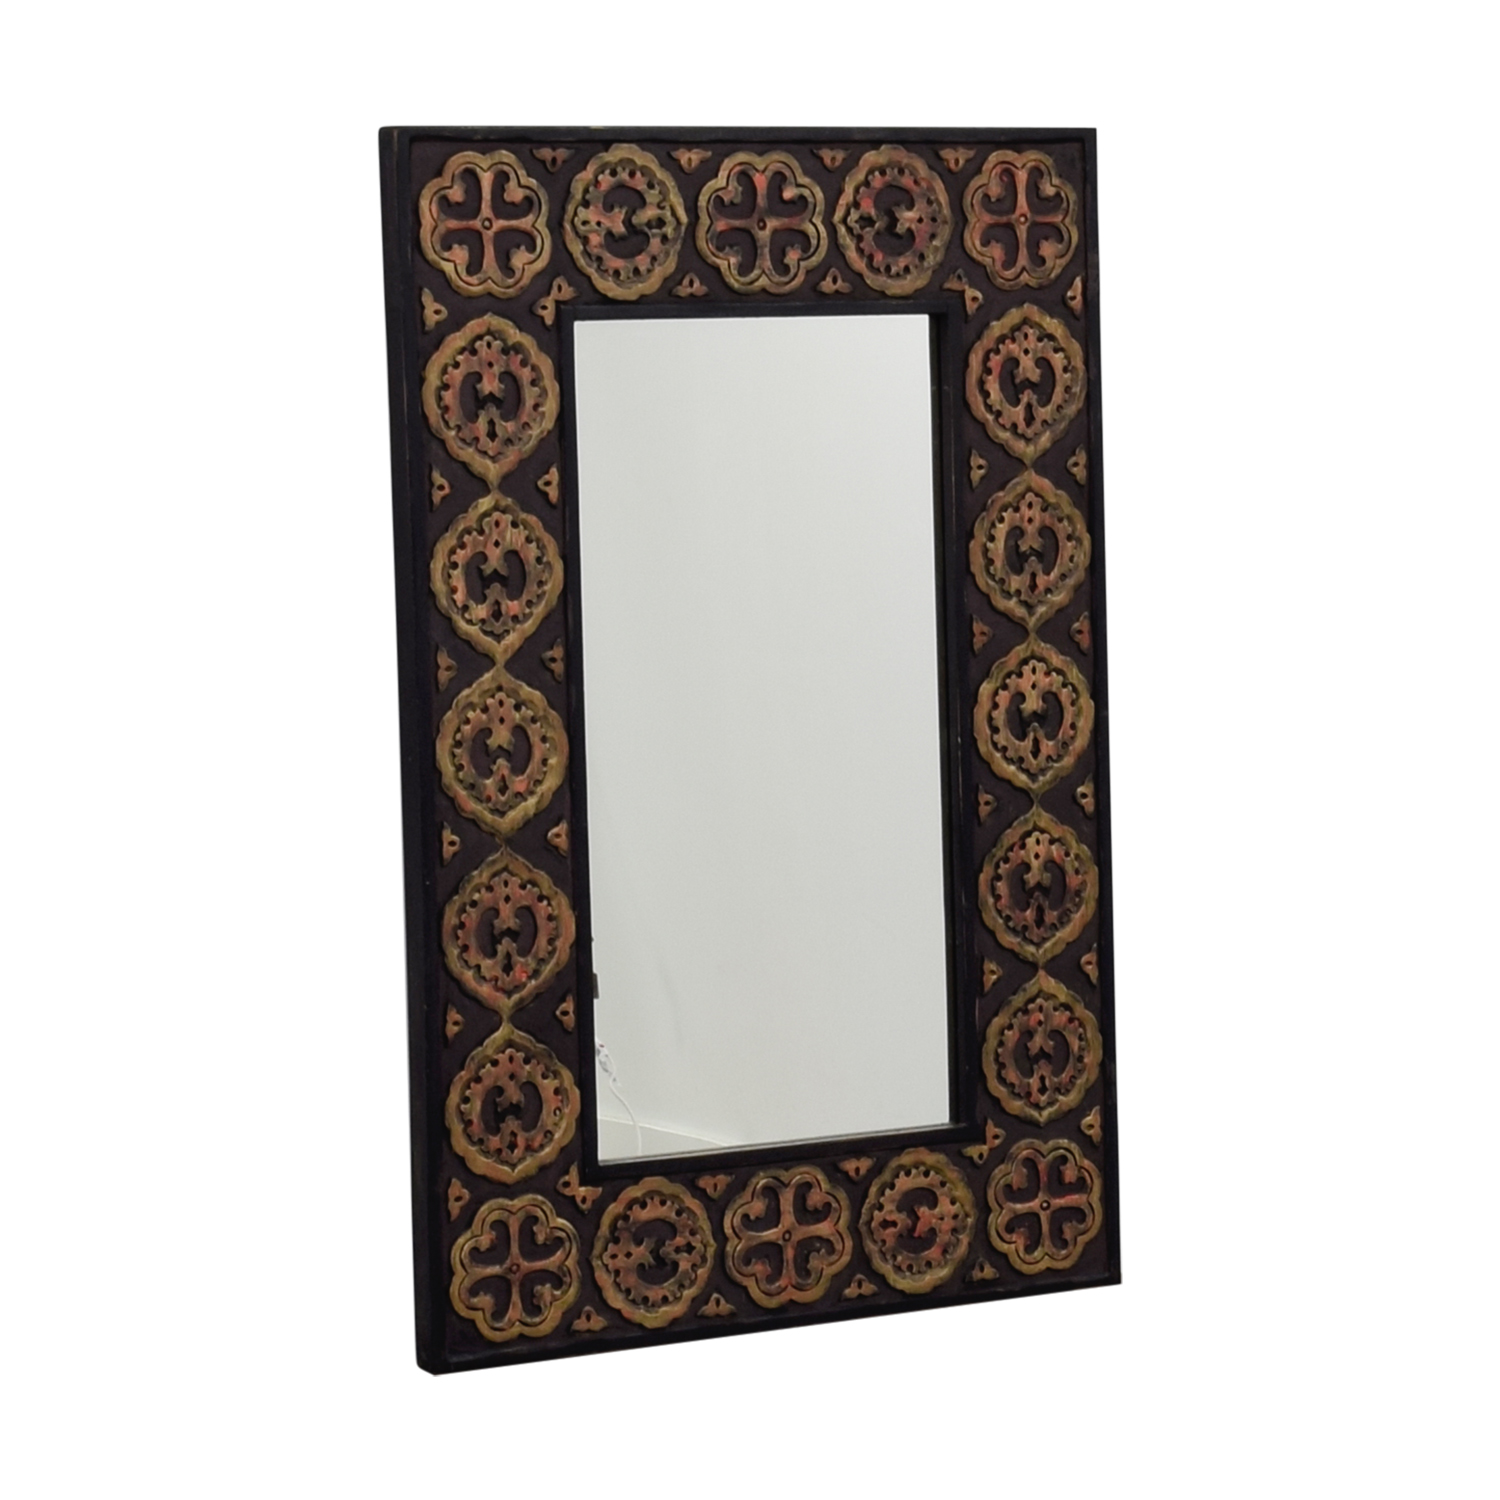 90 Off Pier 1 Pier One Imports Mirror With Rustic Gold